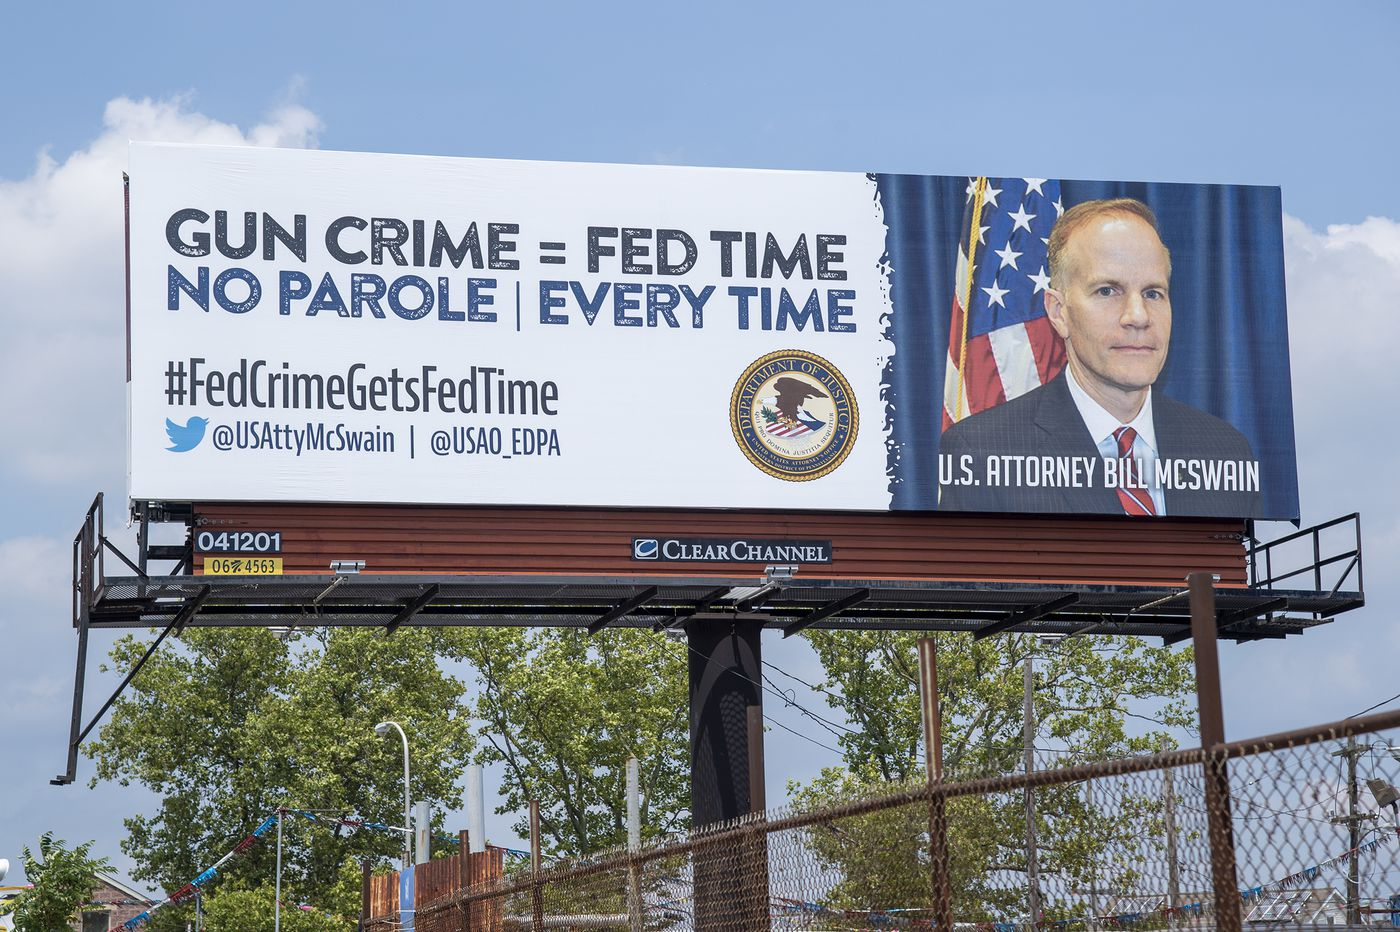 U.S. Attorney Bill McSwain spent more than $75,000 to slap his name and face on billboards